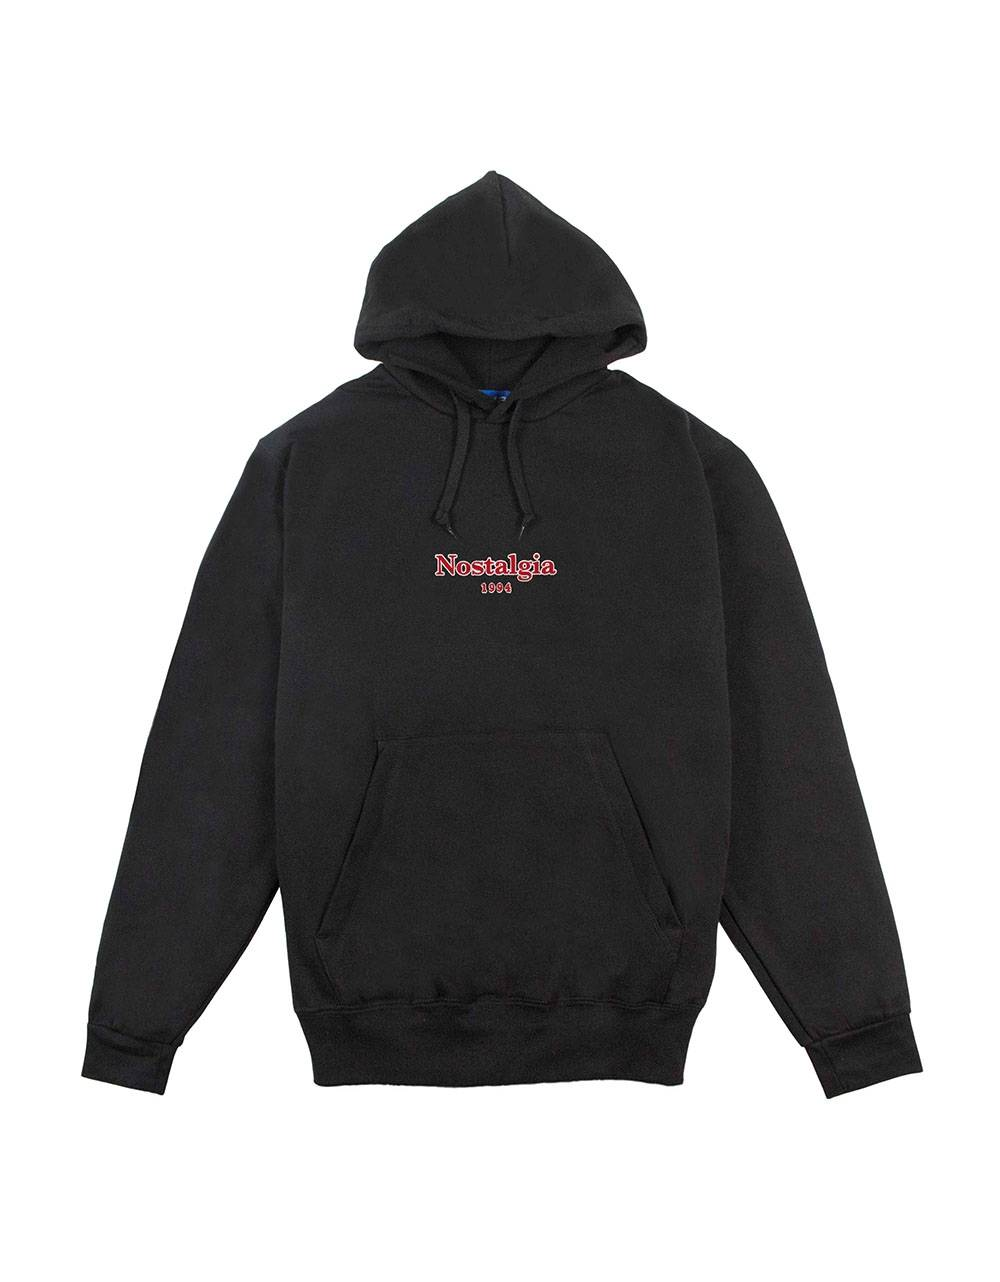 Usual Nostalgia outline hoodie - Black Usual Sweater 100,00 €